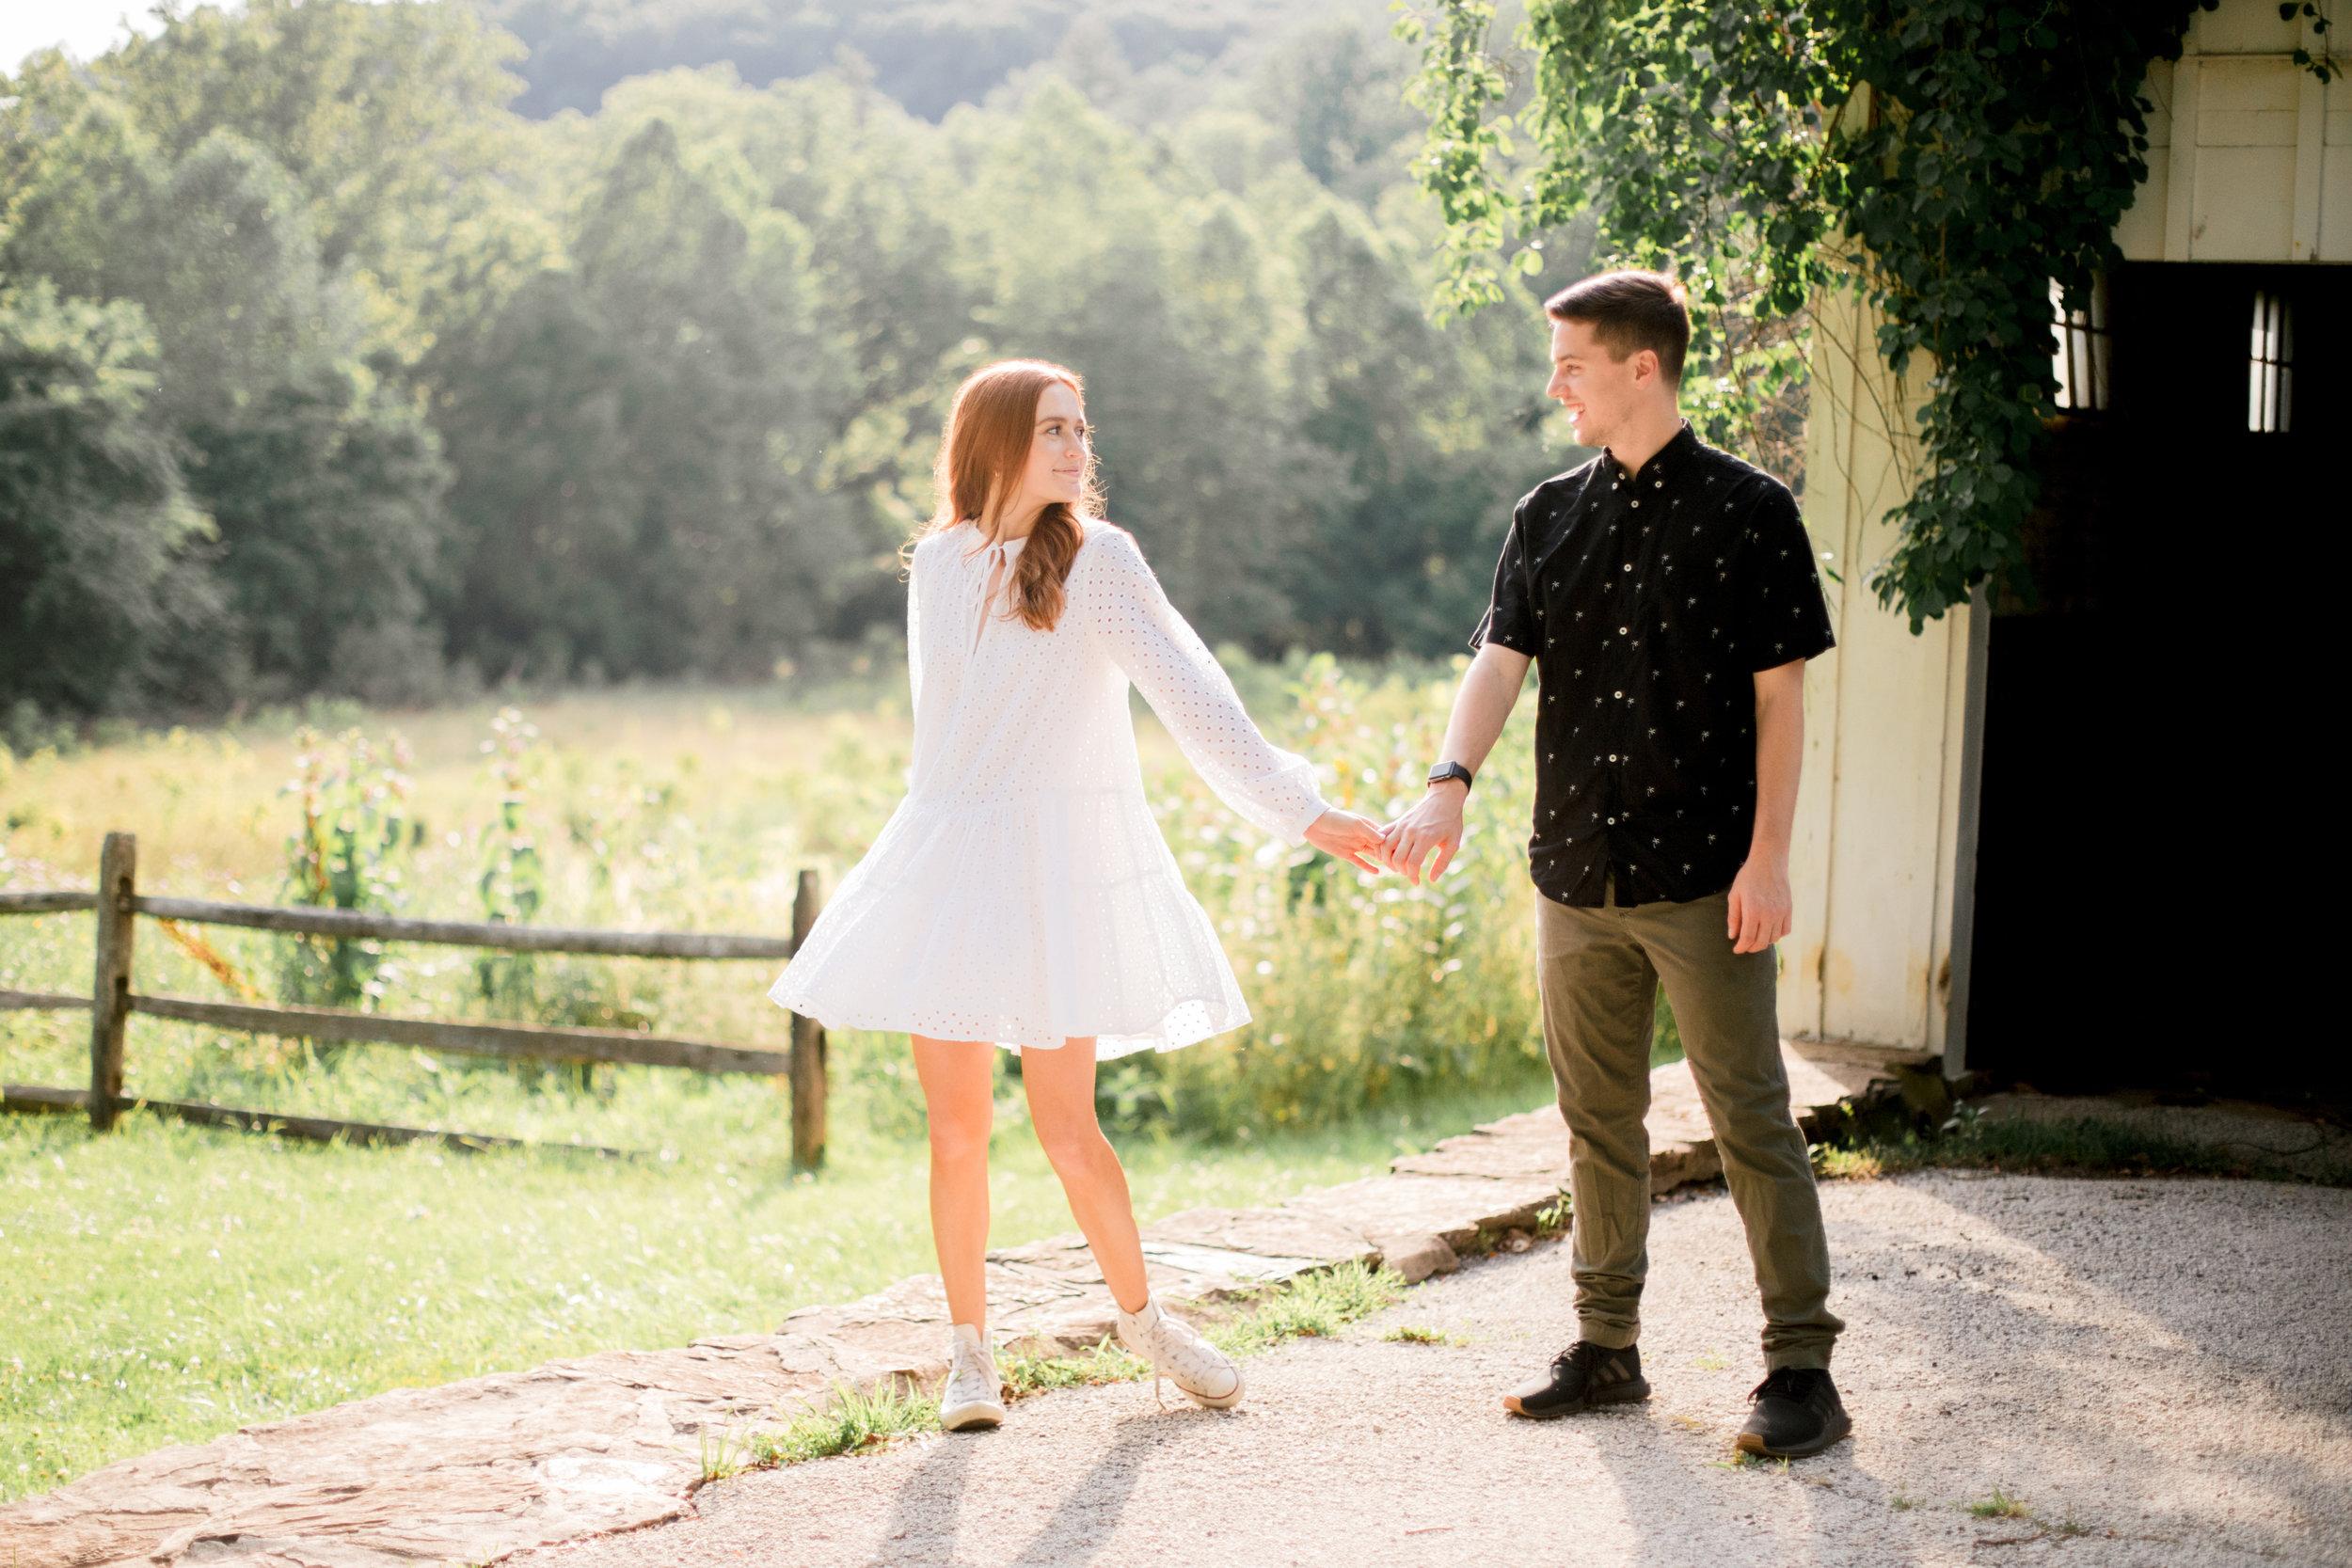 valley-forge-engagement-session-hope-helmuth-photography-29.jpg